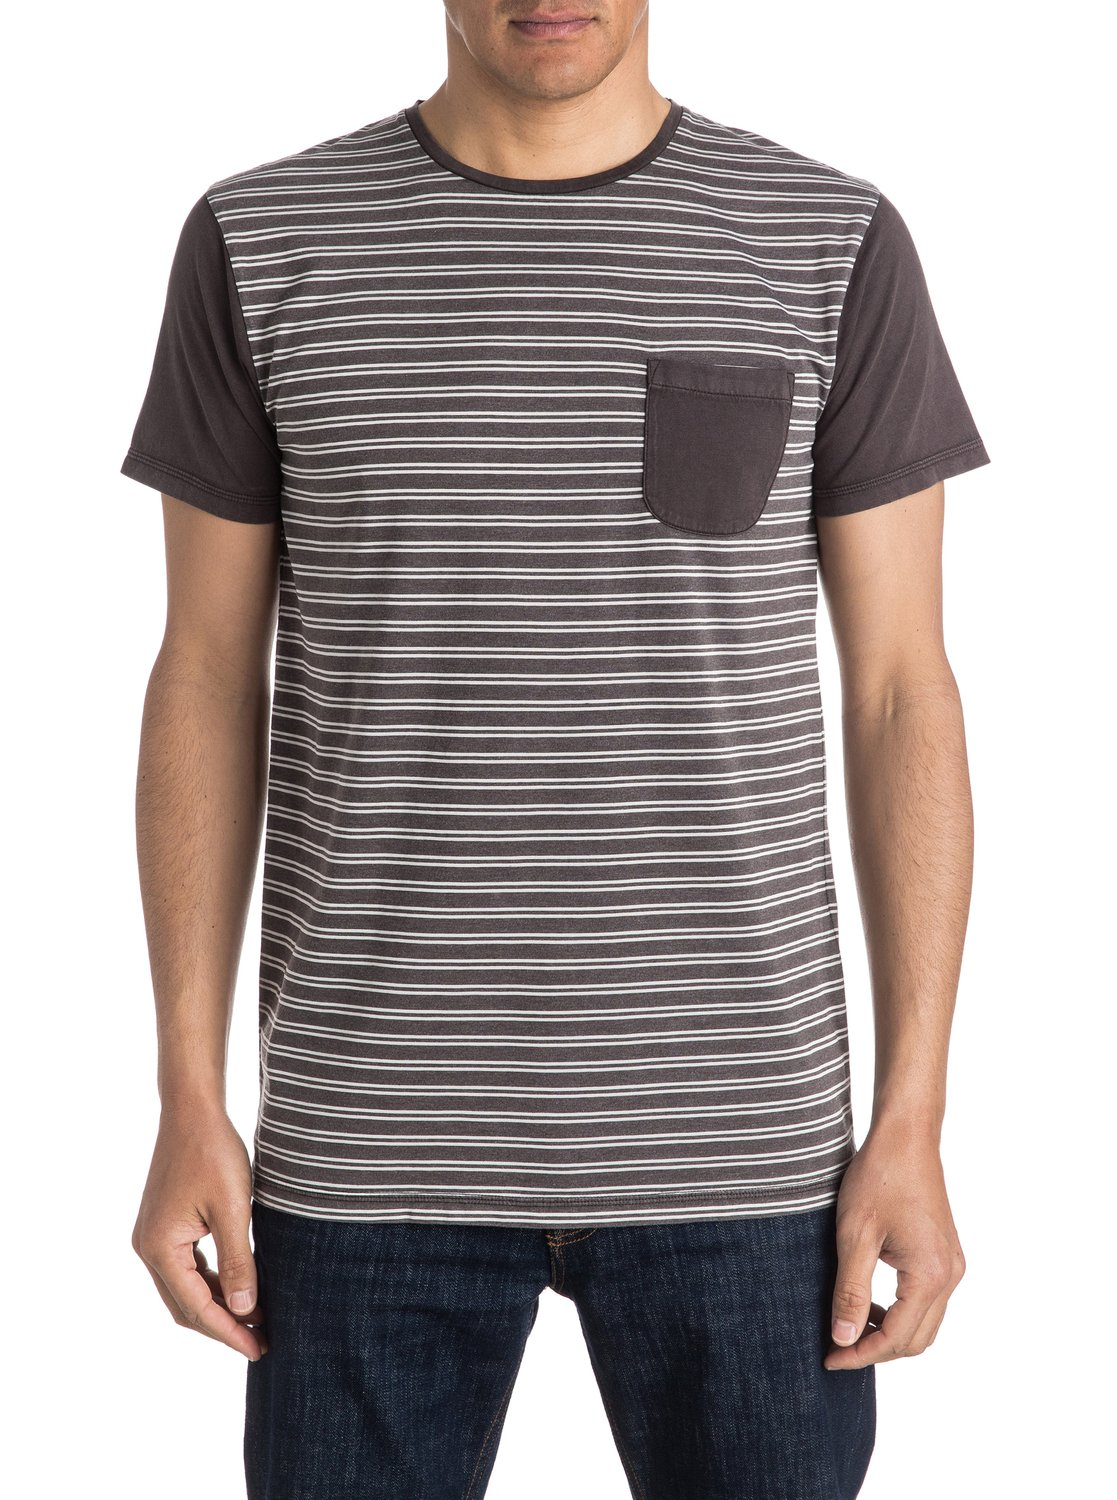 2622c9e1 0 Acid Striped Pocket Tee EQYKT03473 Quiksilver